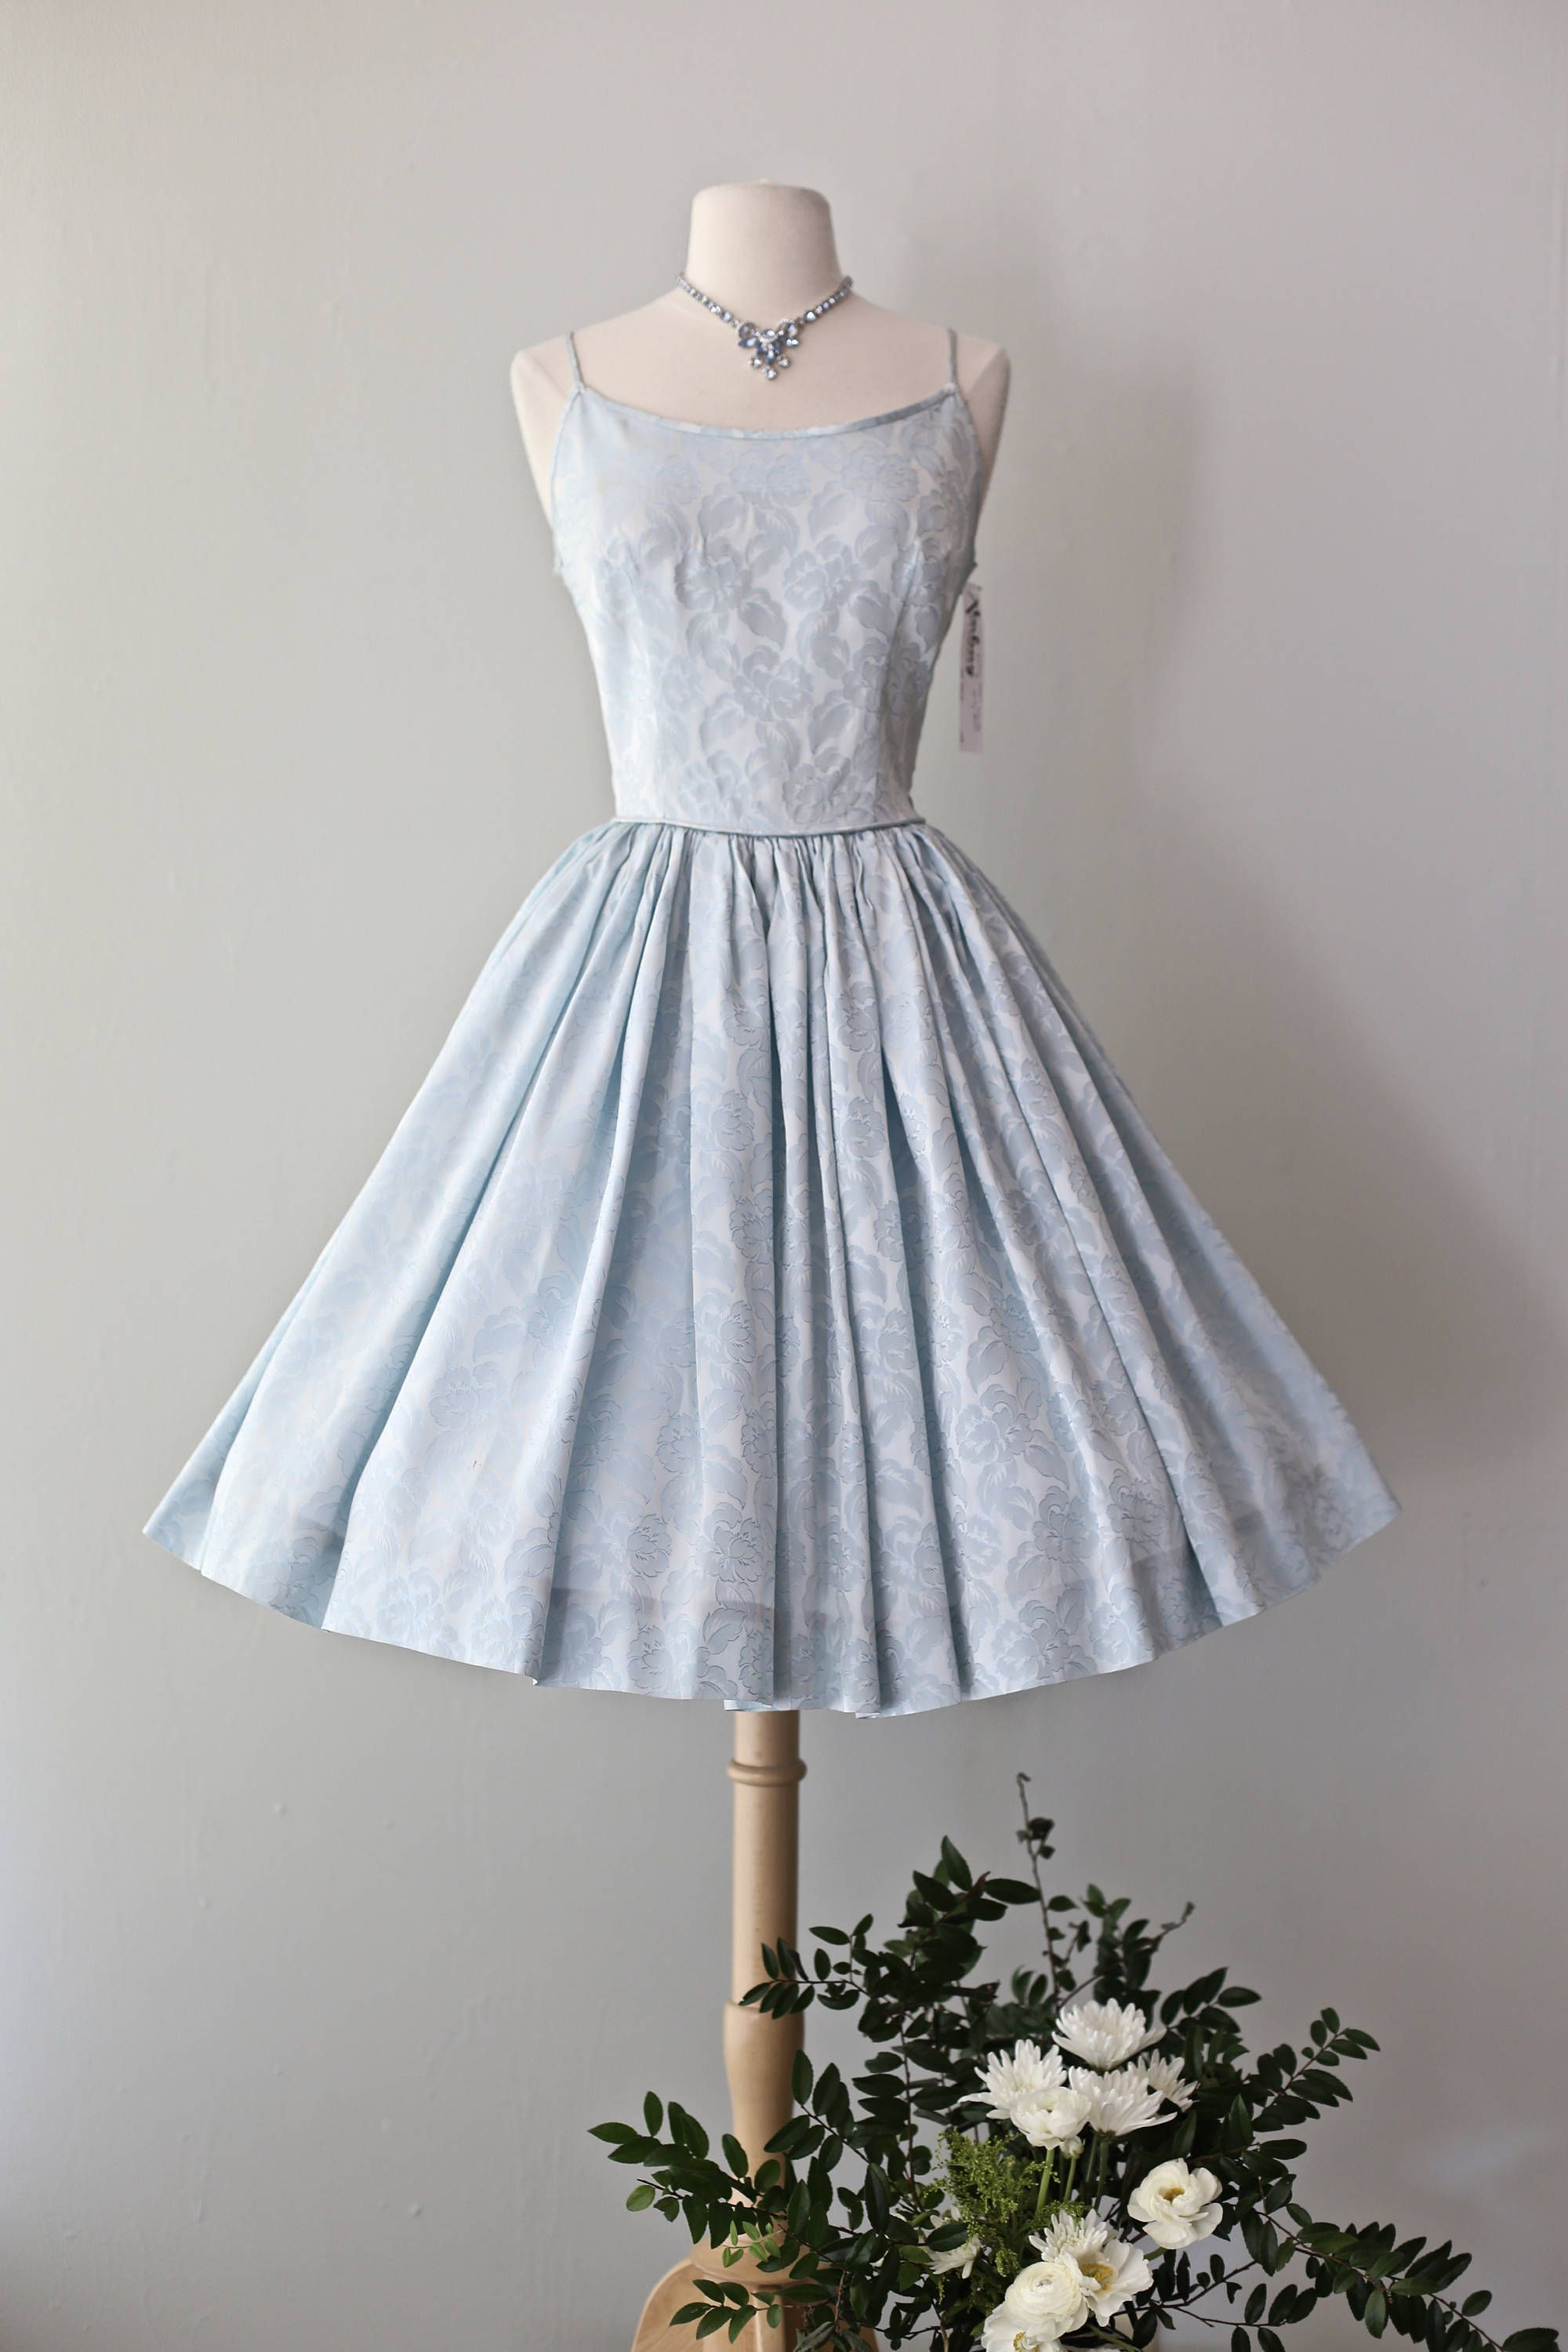 02fee2c0c9f Vintage 1950 s Ice Blue Brocade Party Dress ~ Vintage 50s Light Blue Full  Skirt Cocktail Dress by xtabayvintage on Etsy